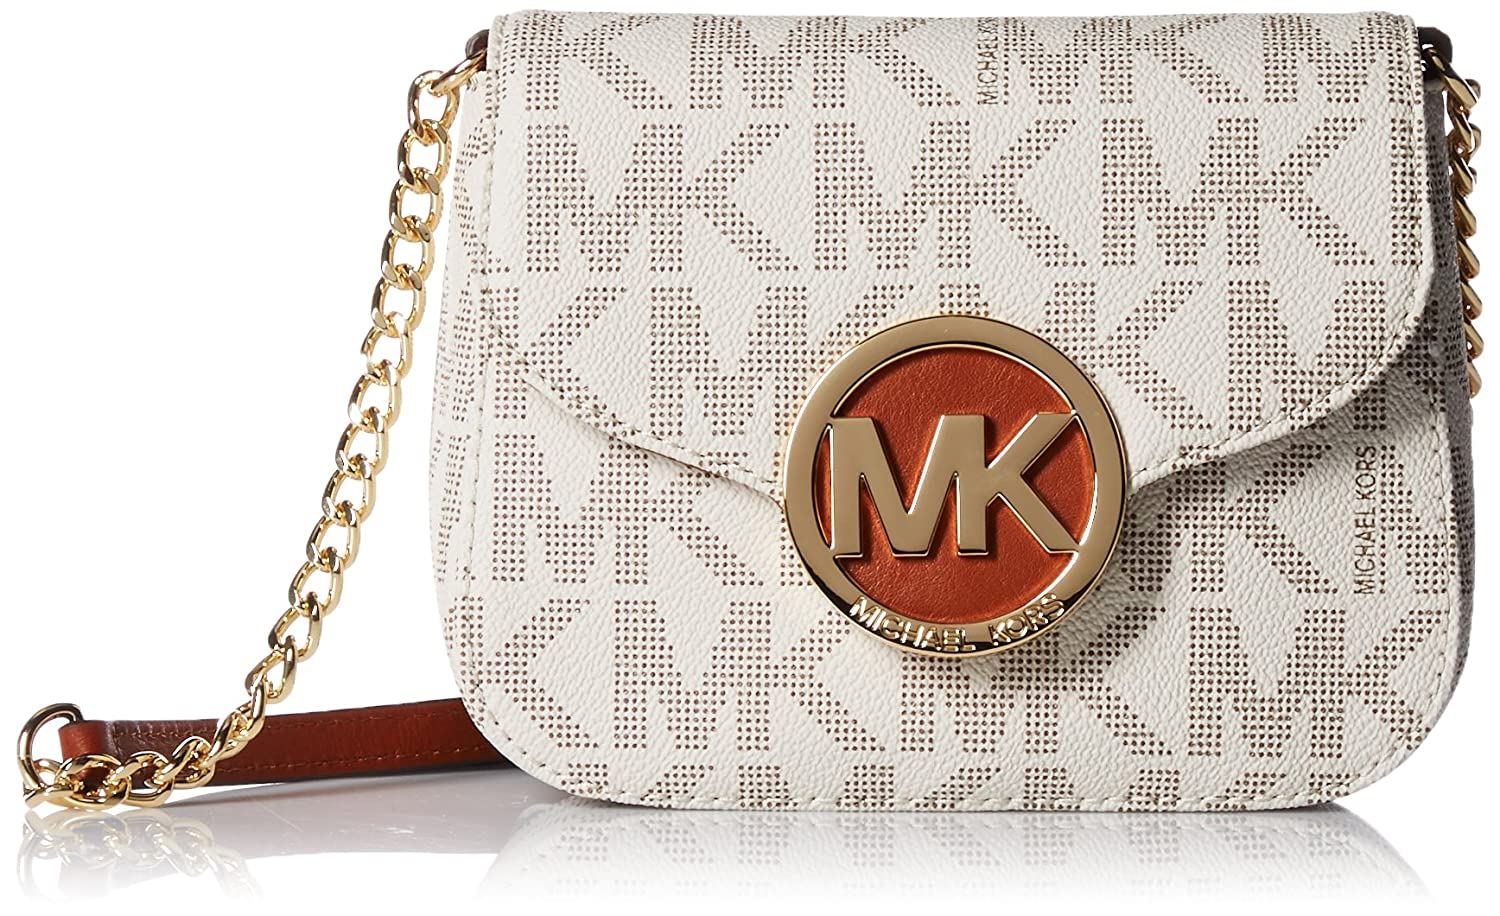 c0206ddb24419 Michael Kors Fulton Vanilla PVC MK Signature Small Crossbody Bag 32T4GFTC1B  NEW  Handbags  Amazon.com